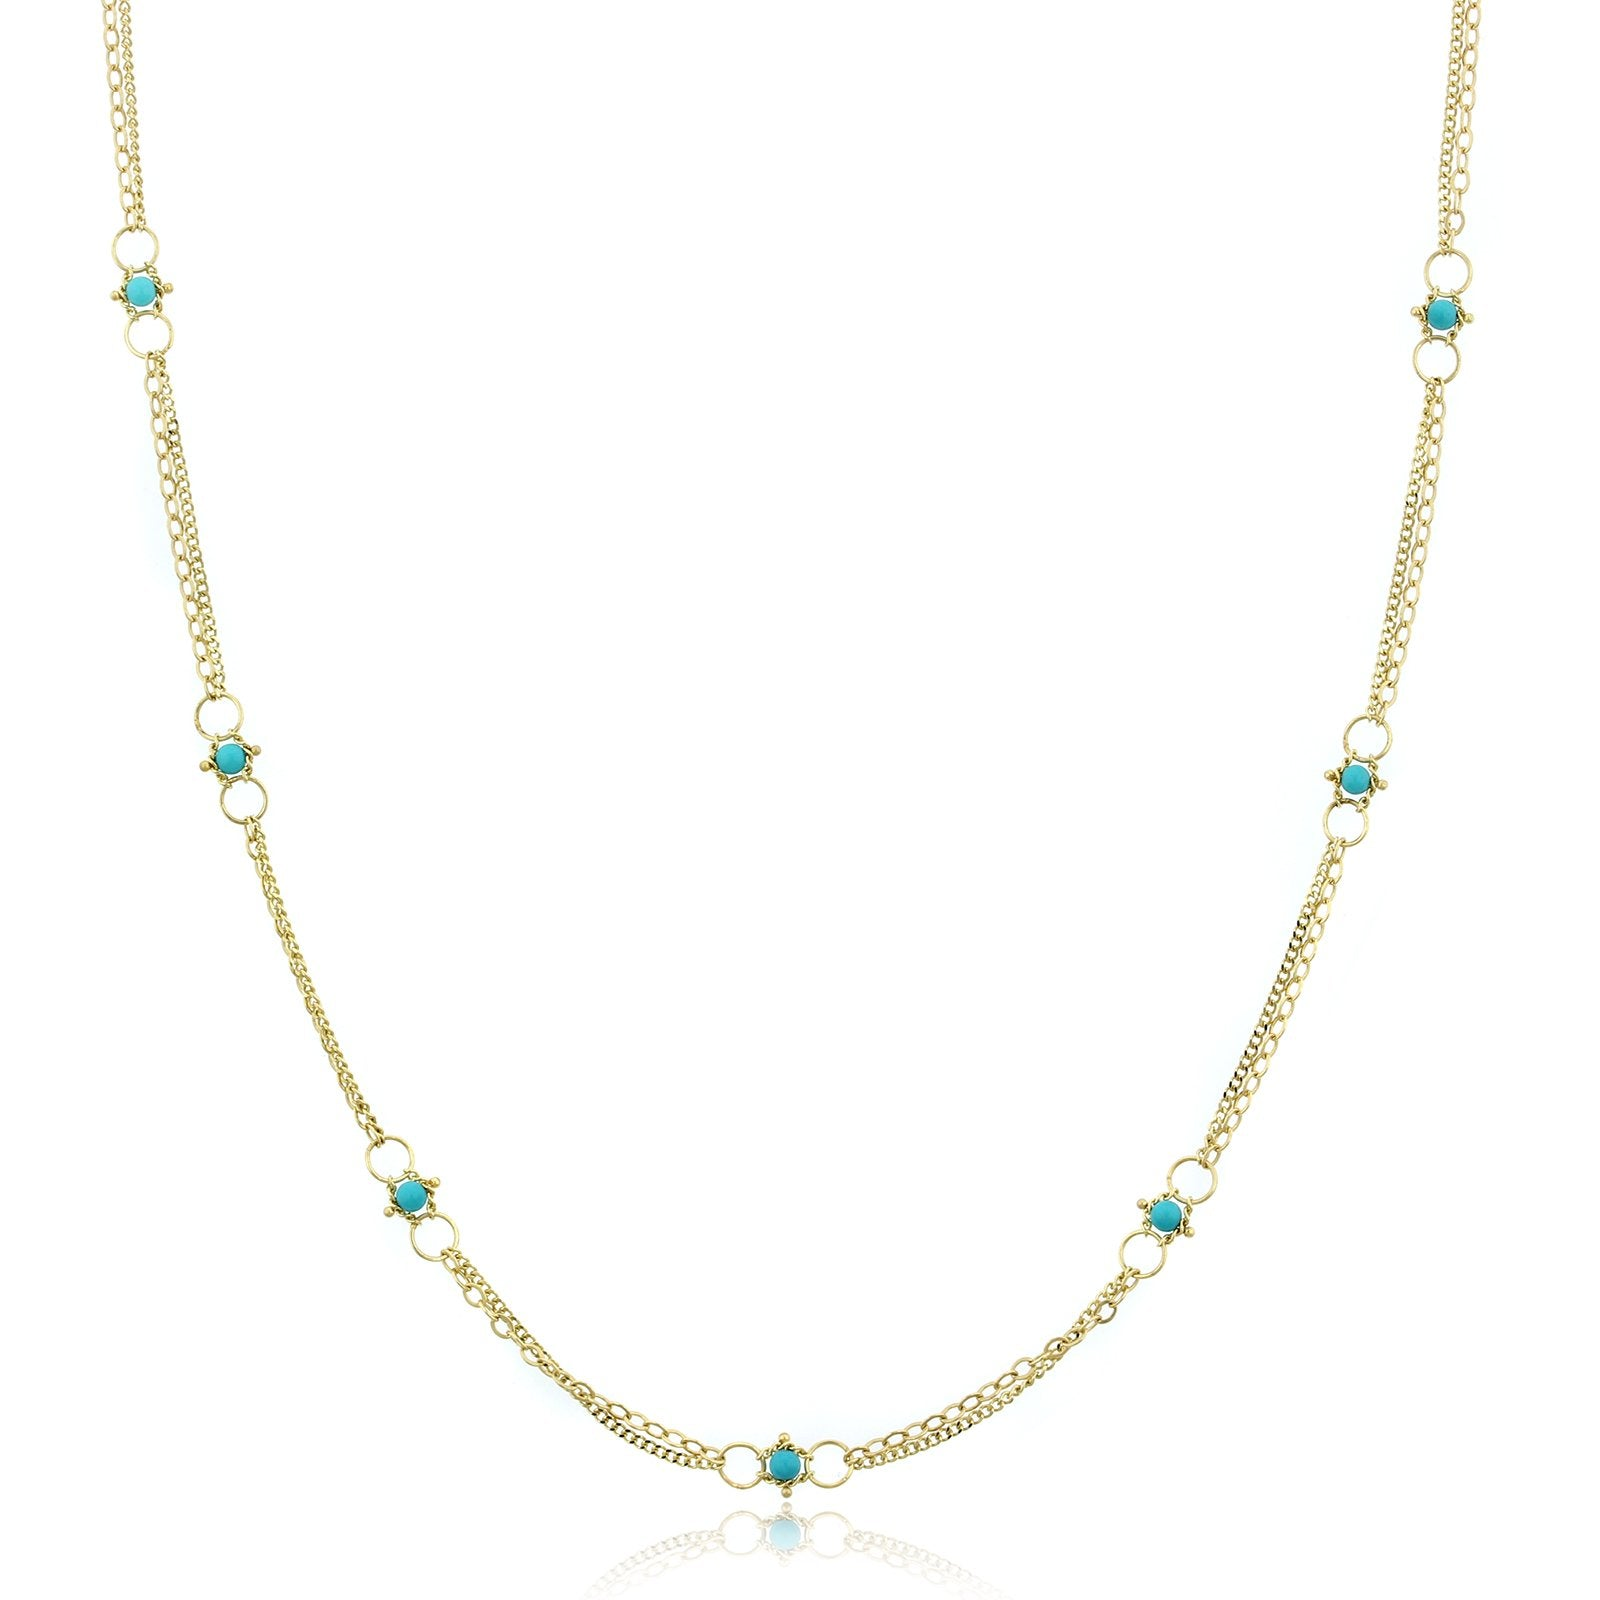 18K Yellow Gold Round Turquoise Station Necklace